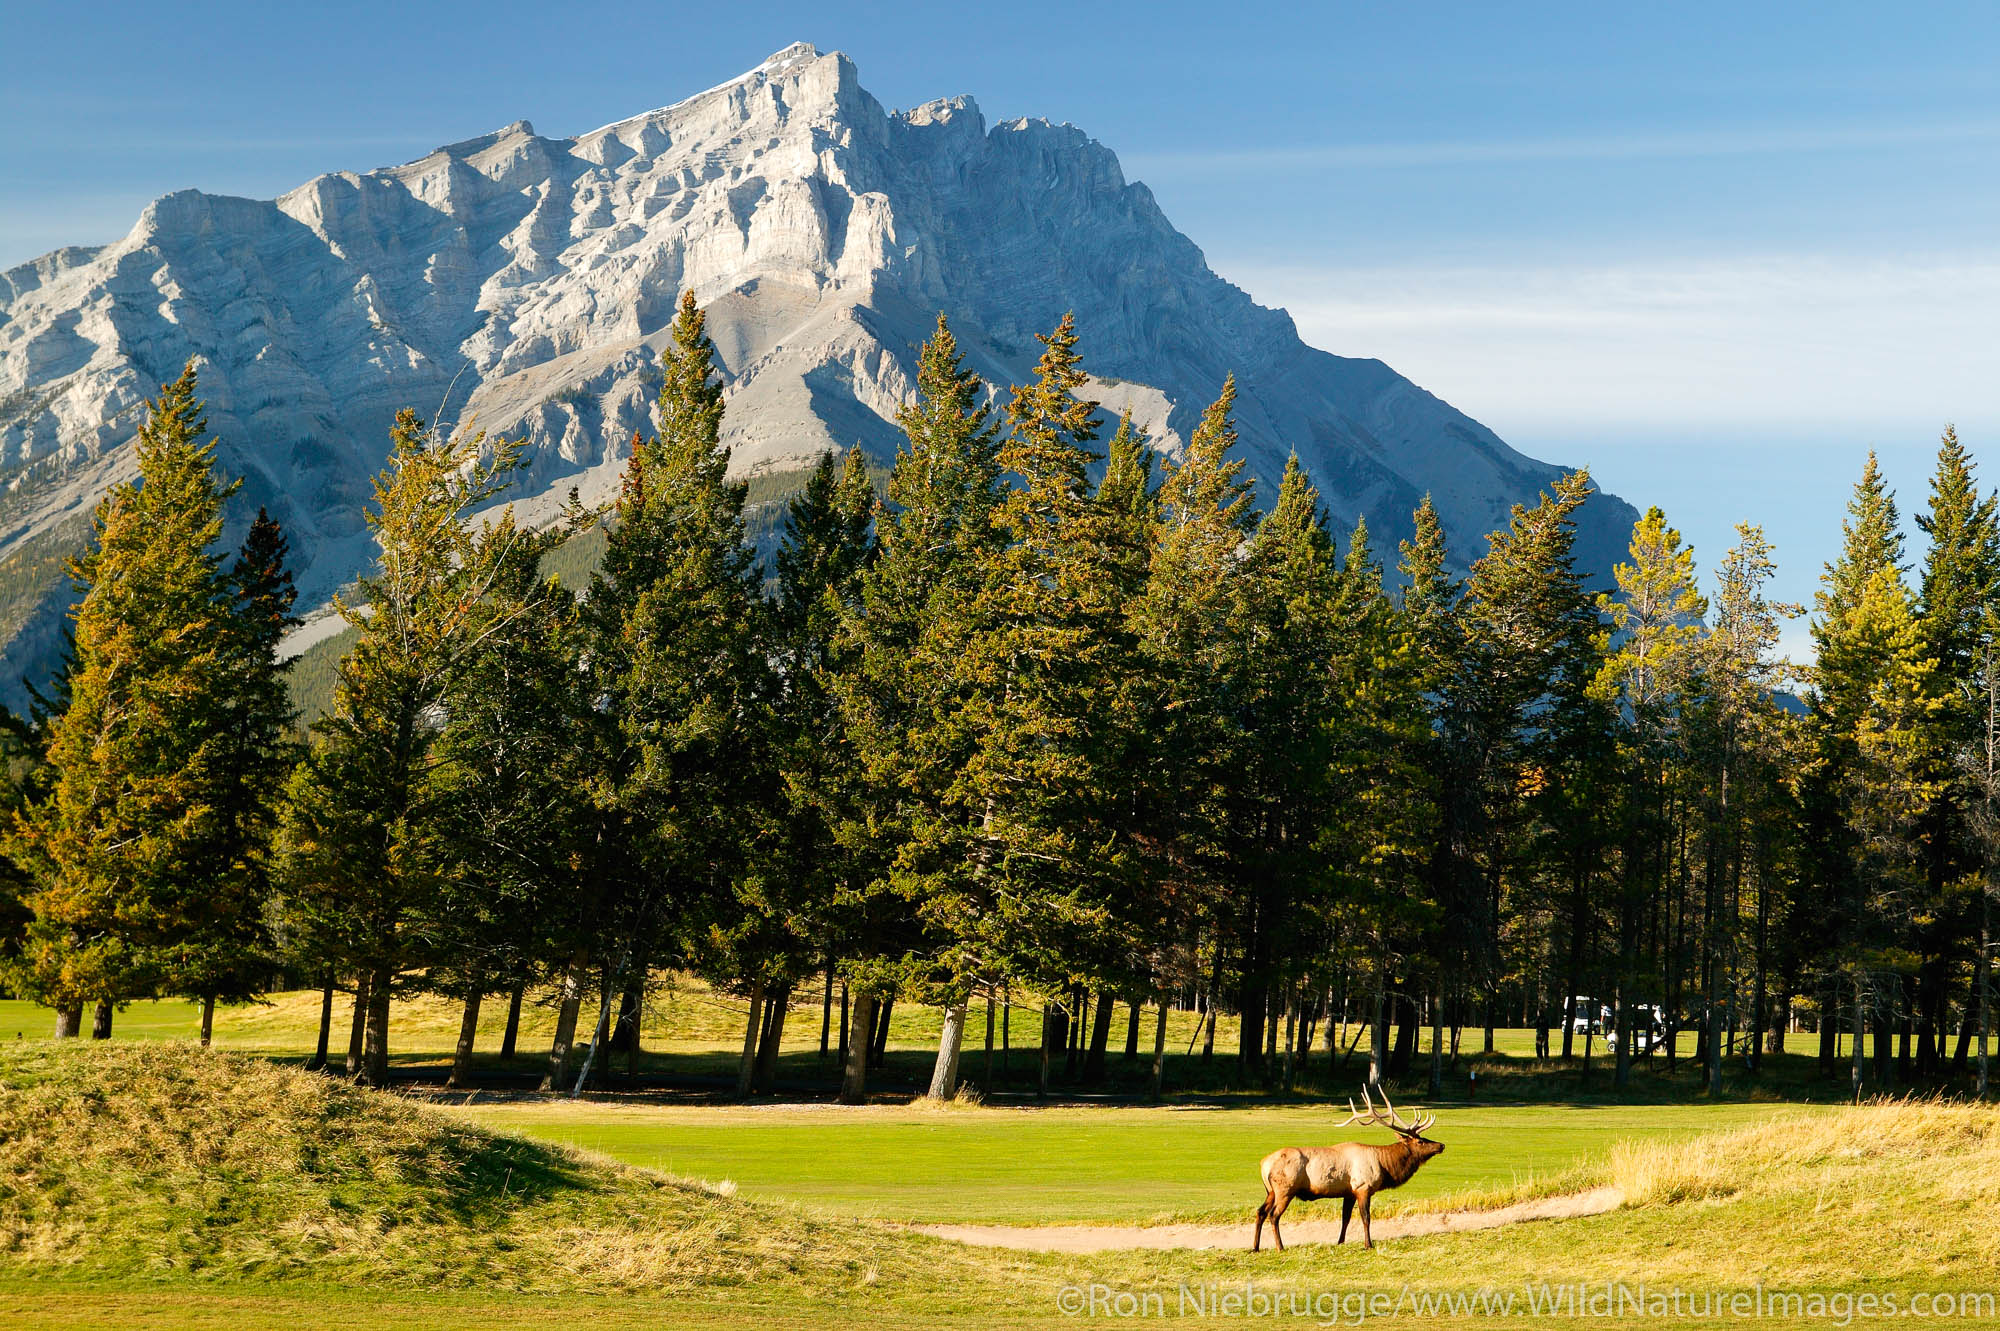 Elk on the golf course in Banff, Cascade Mountain in the background, Banff National Park, Alberta, Canada.